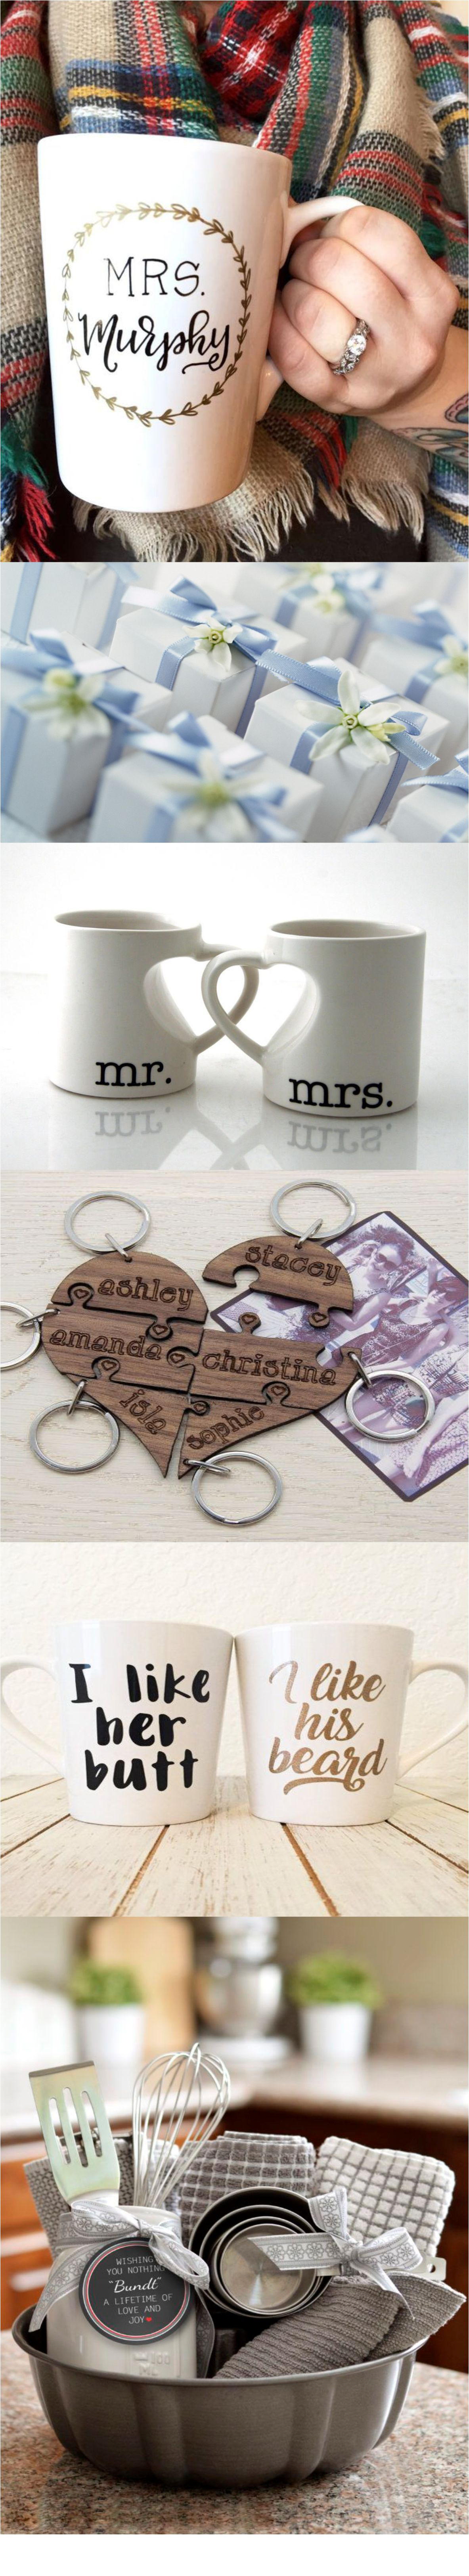 New Wedding gift ideas for someone special